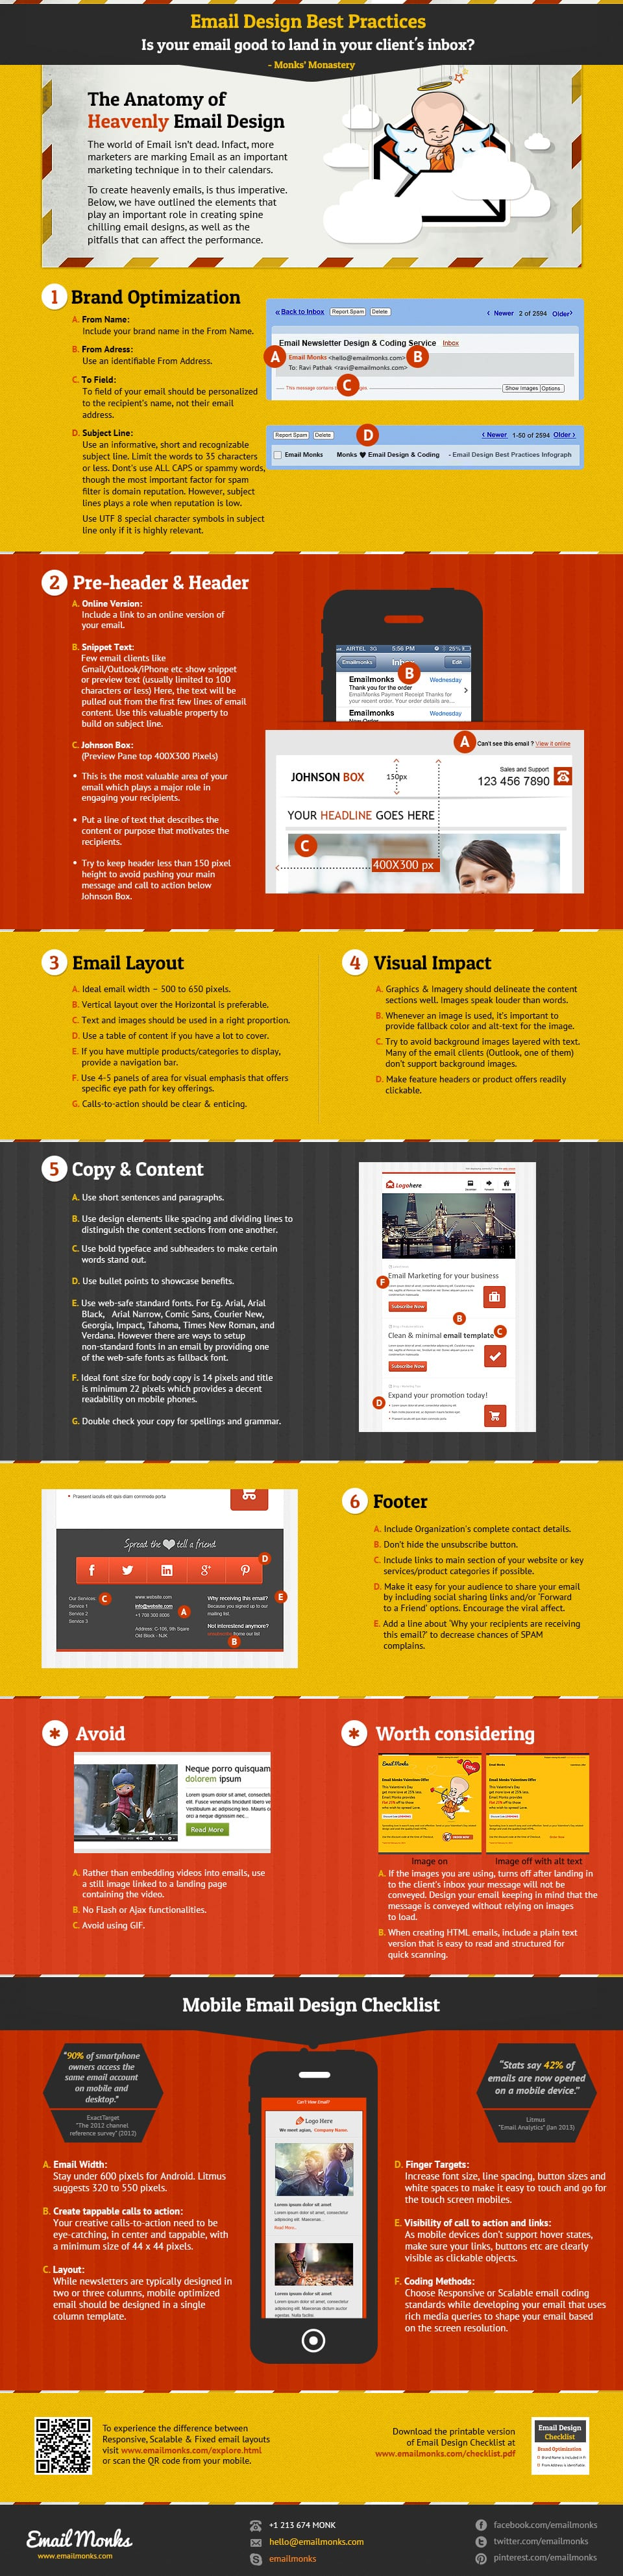 email design best practices infographic smart insights. Black Bedroom Furniture Sets. Home Design Ideas